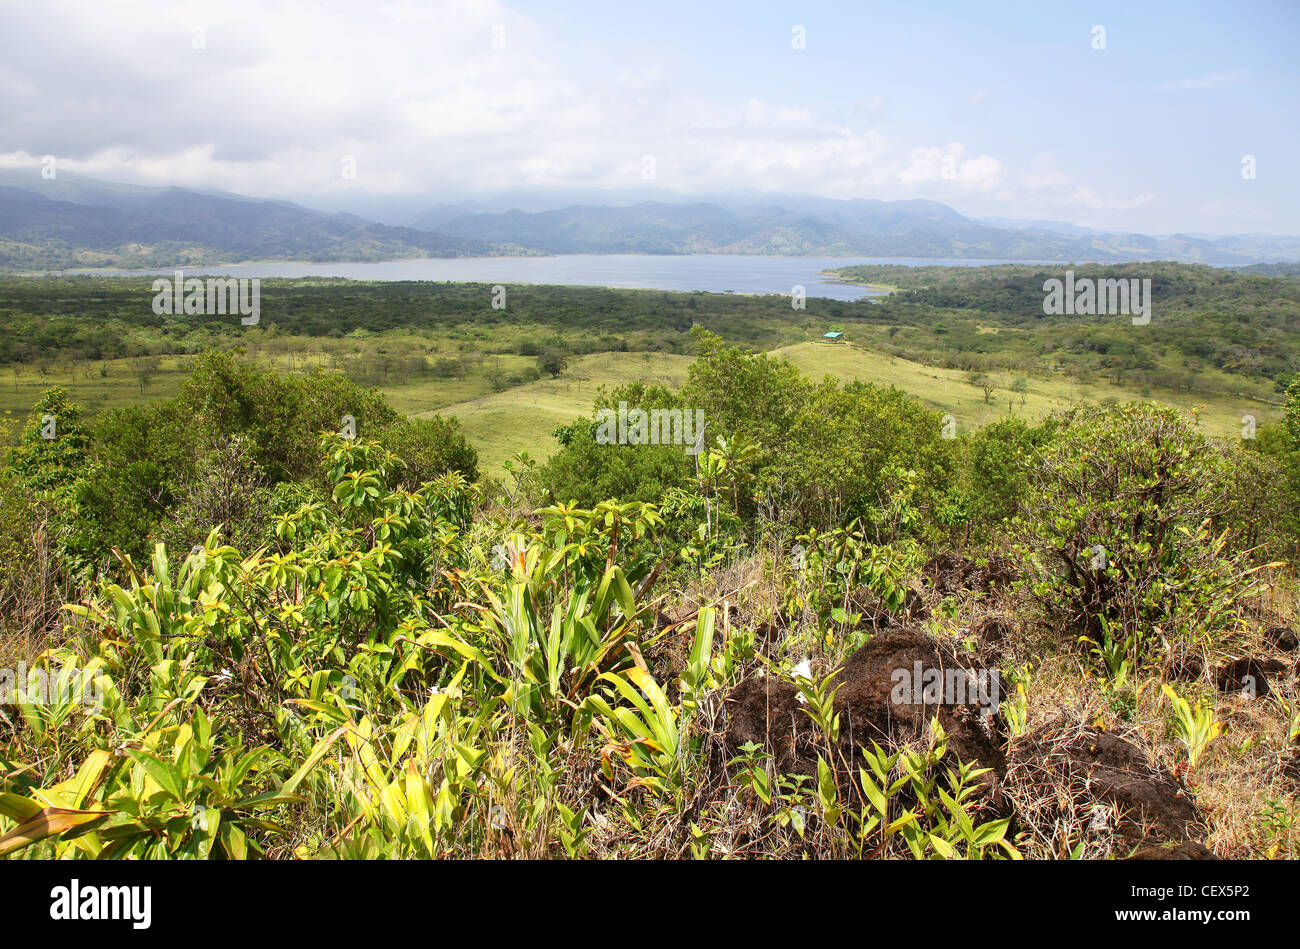 View from Arenal Volcano, or Volcán Arenal, of lake Arenal near La Fortuna, Costa Rica, Central America - Stock Image